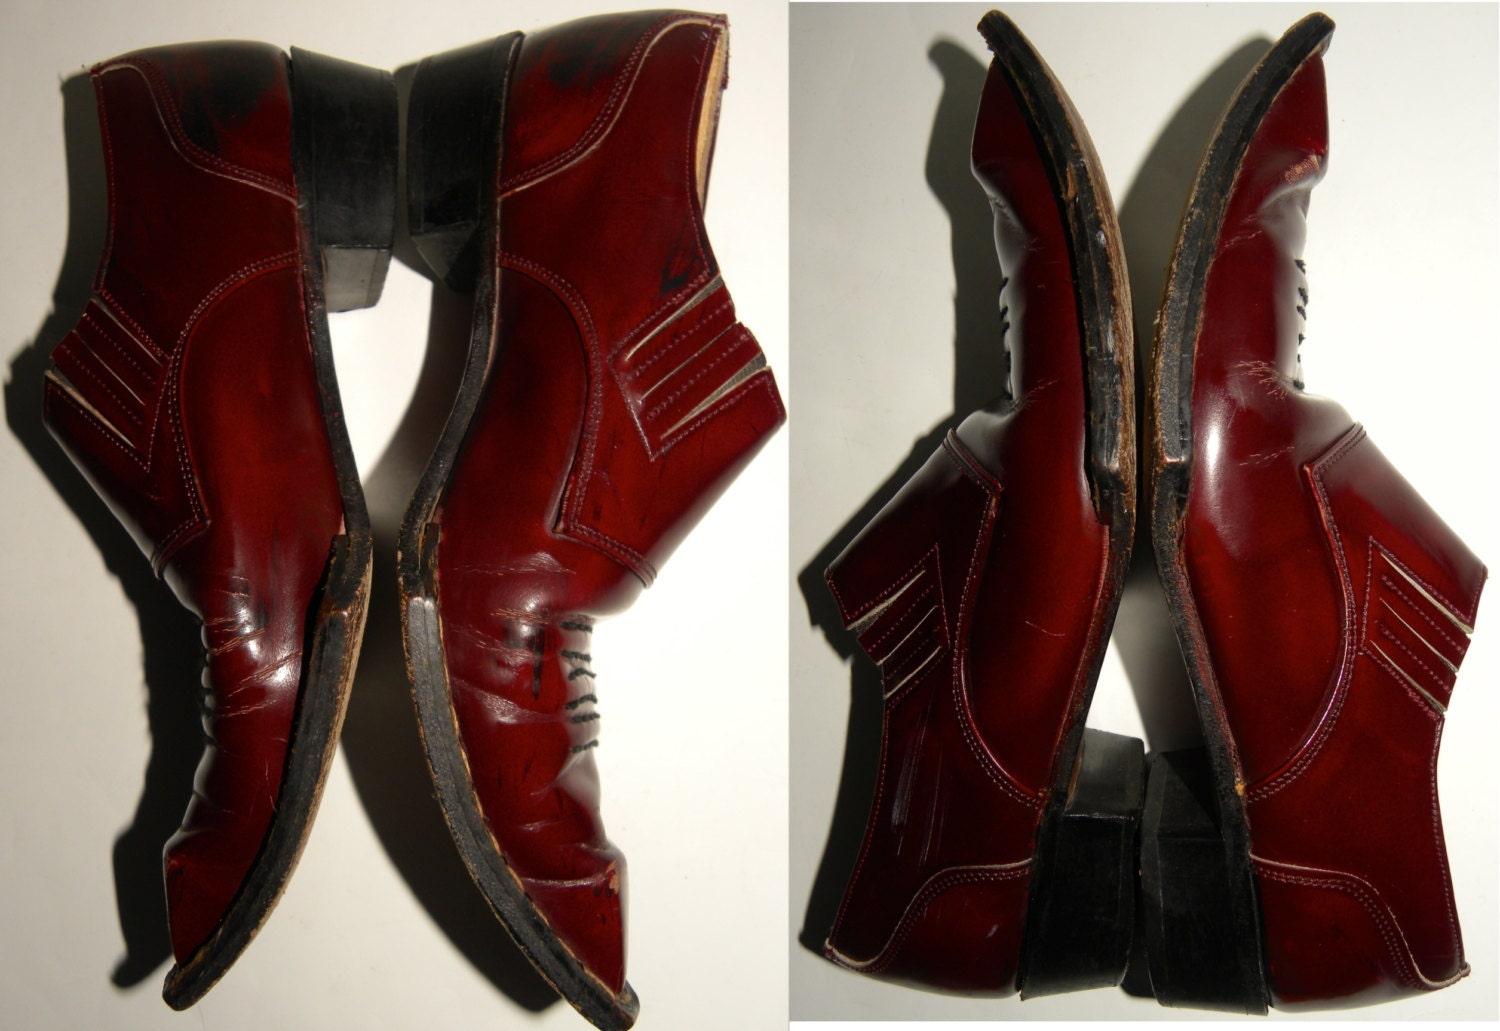 Vintage George Cox Swordfish shoes FLUEVOG booties western OXBLOOD 1980s men 7 women 8.5 - 9